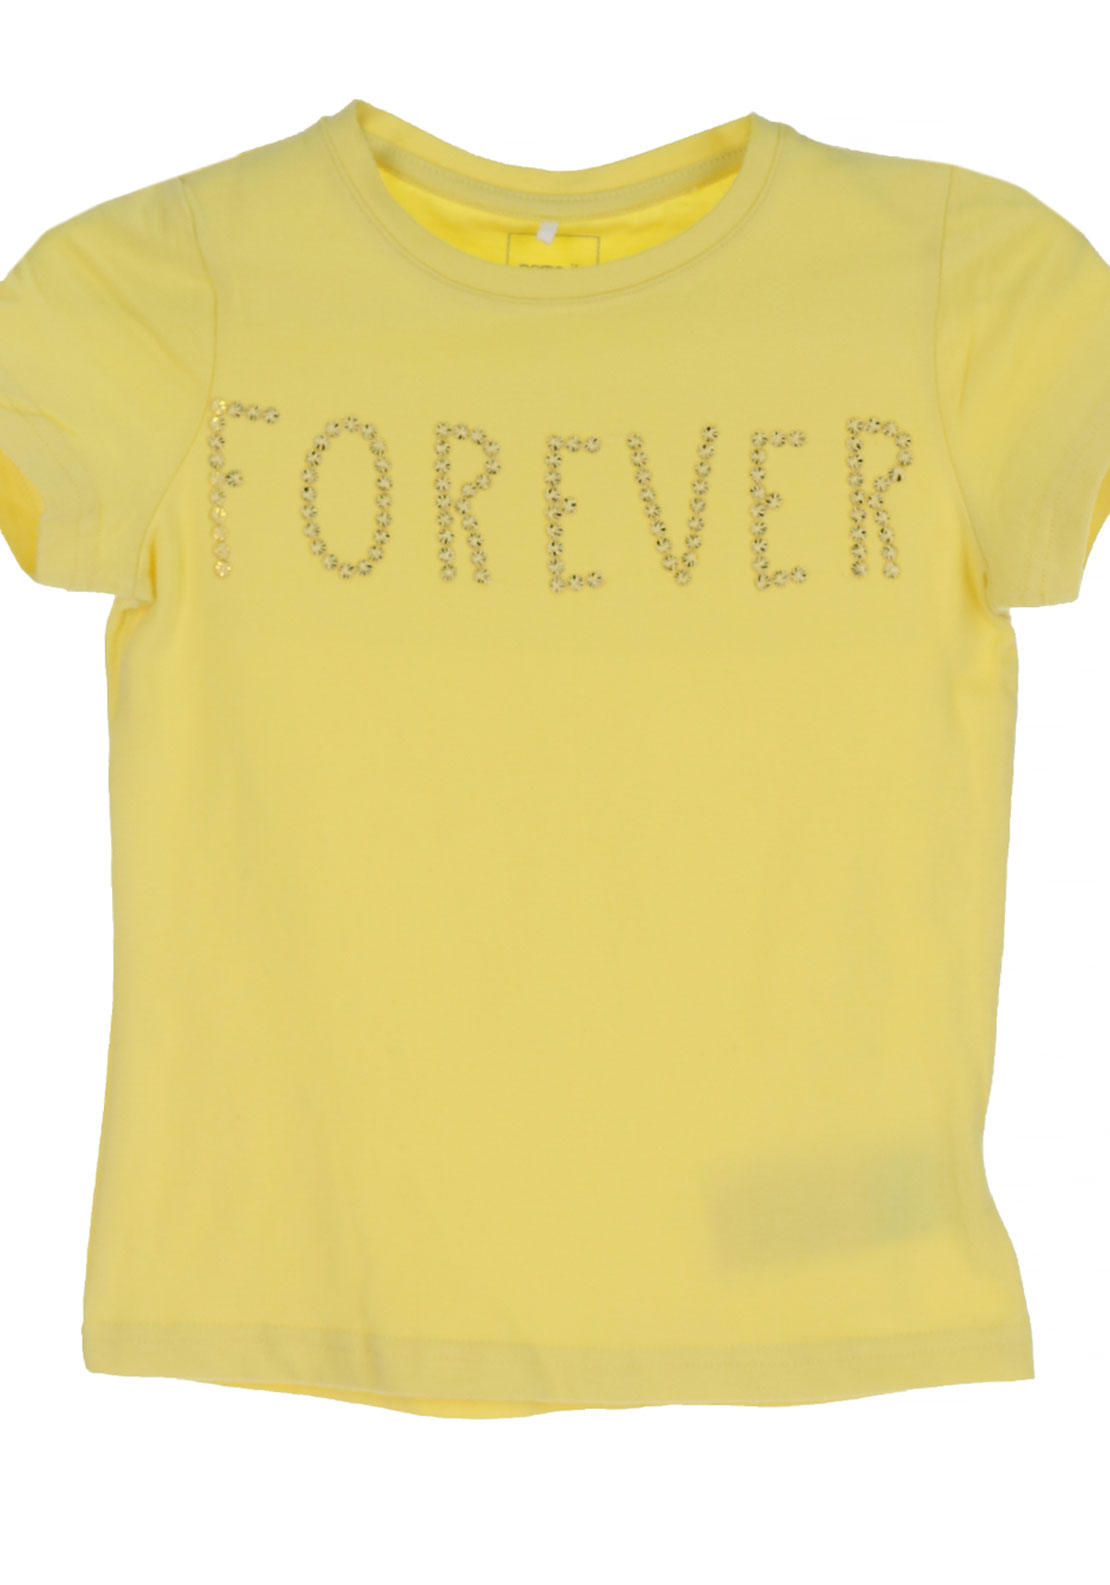 Name It Girls Haminna Forever Embroidered T-Shirt, Popcorn Yellow